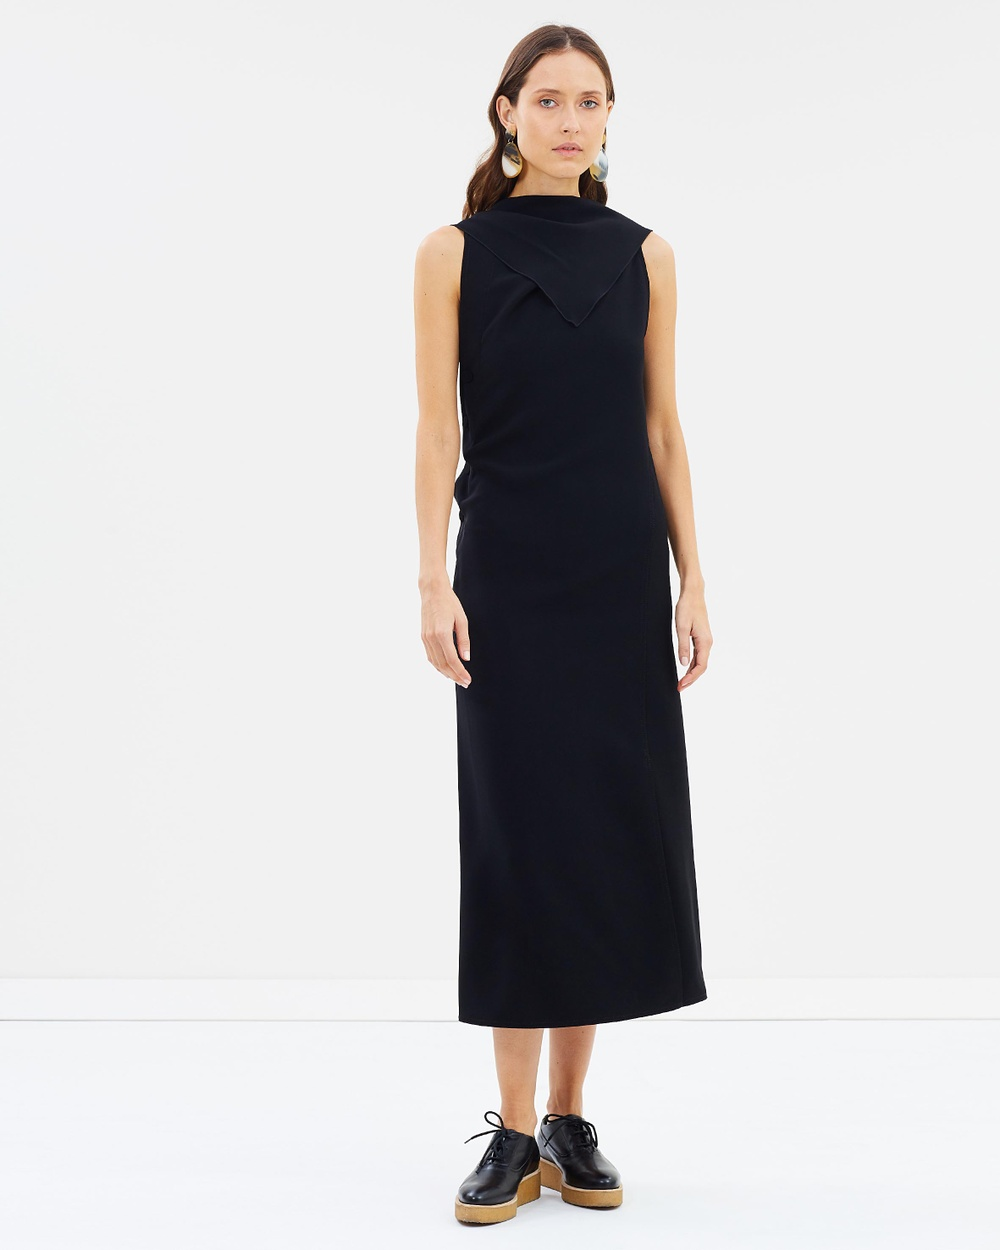 Joseph Ceil Fluid Twill Dress Dresses Black Ceil Fluid Twill Dress